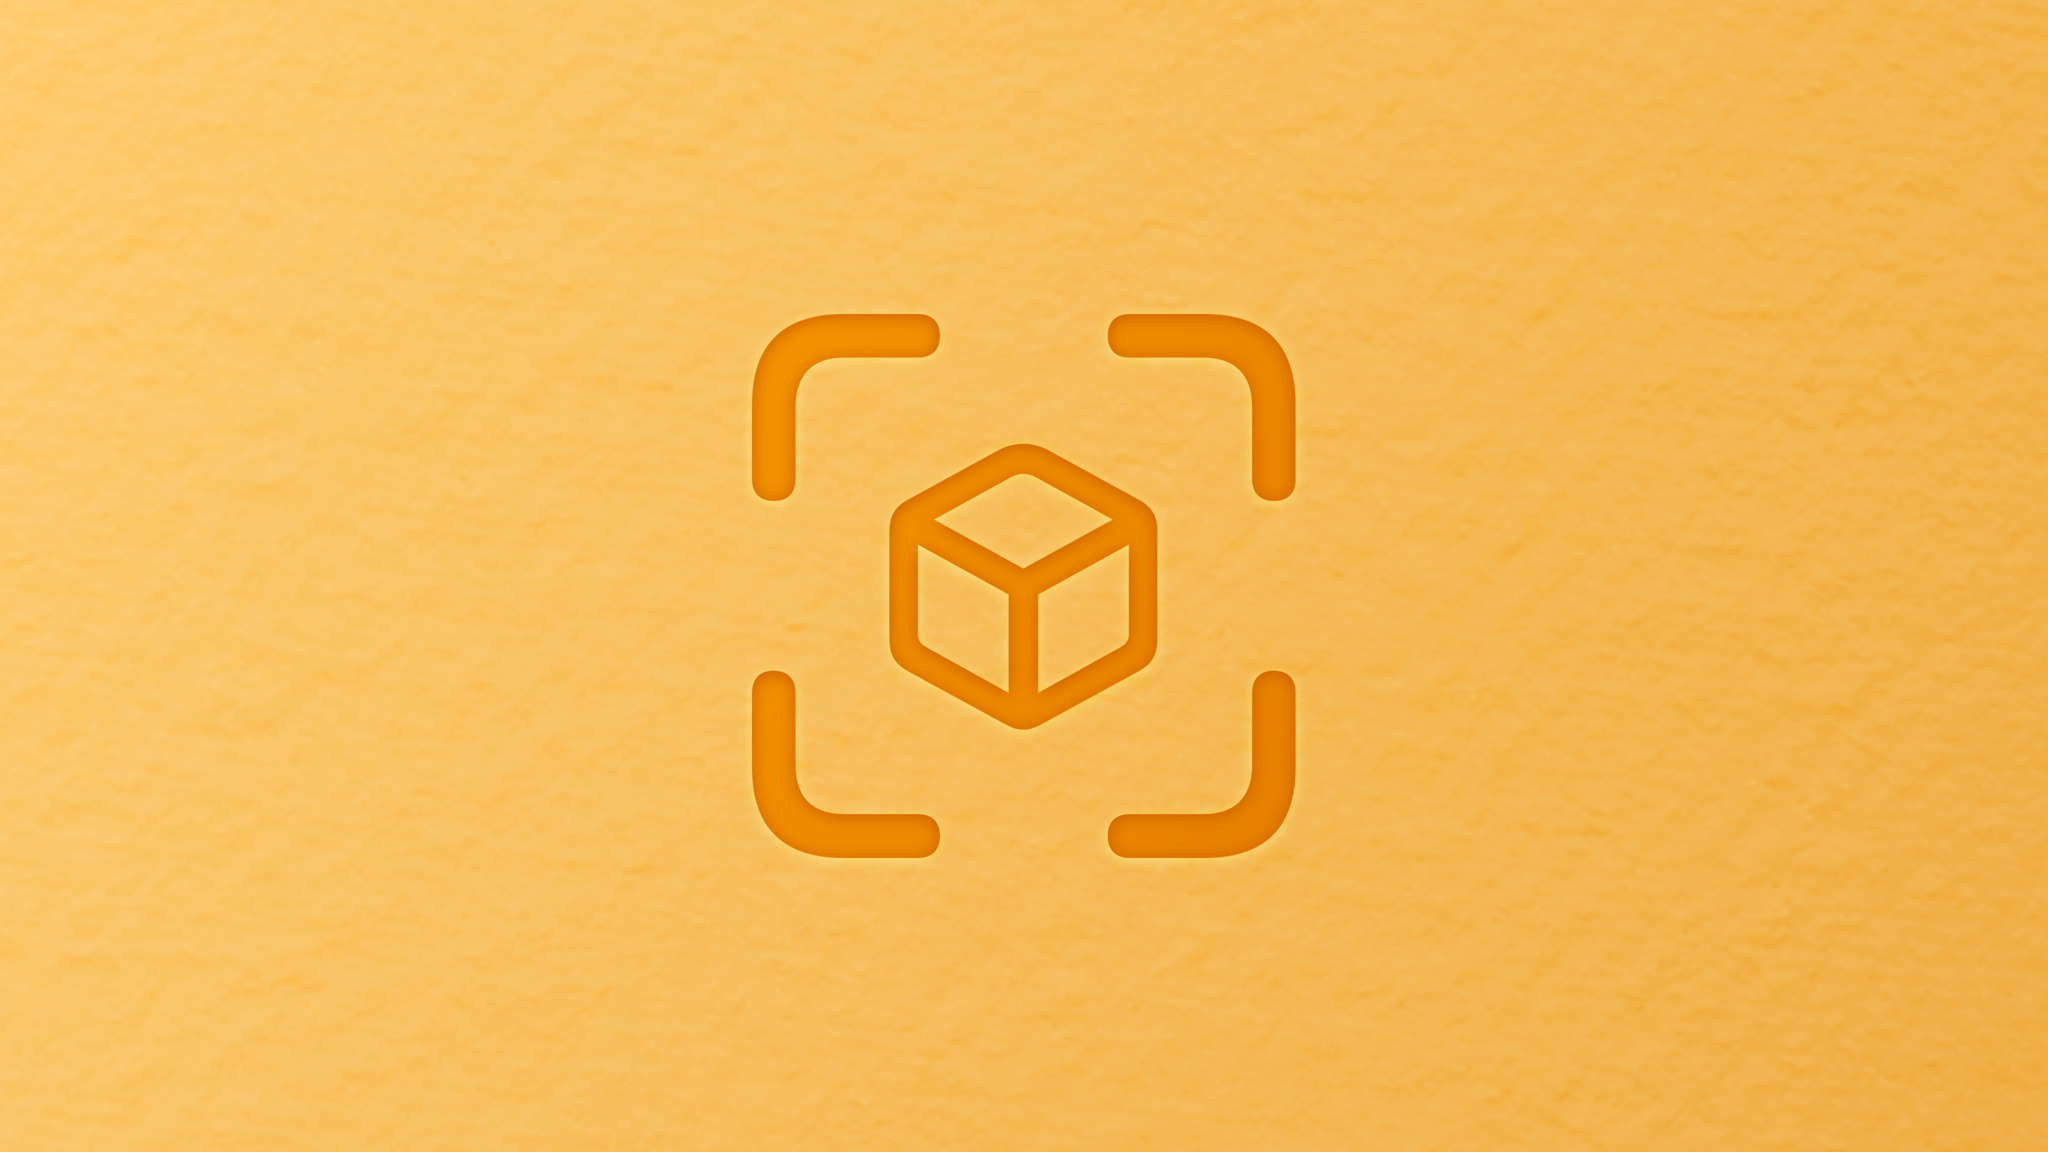 Symbol signifying a camera focusing on an object that looks like a cube